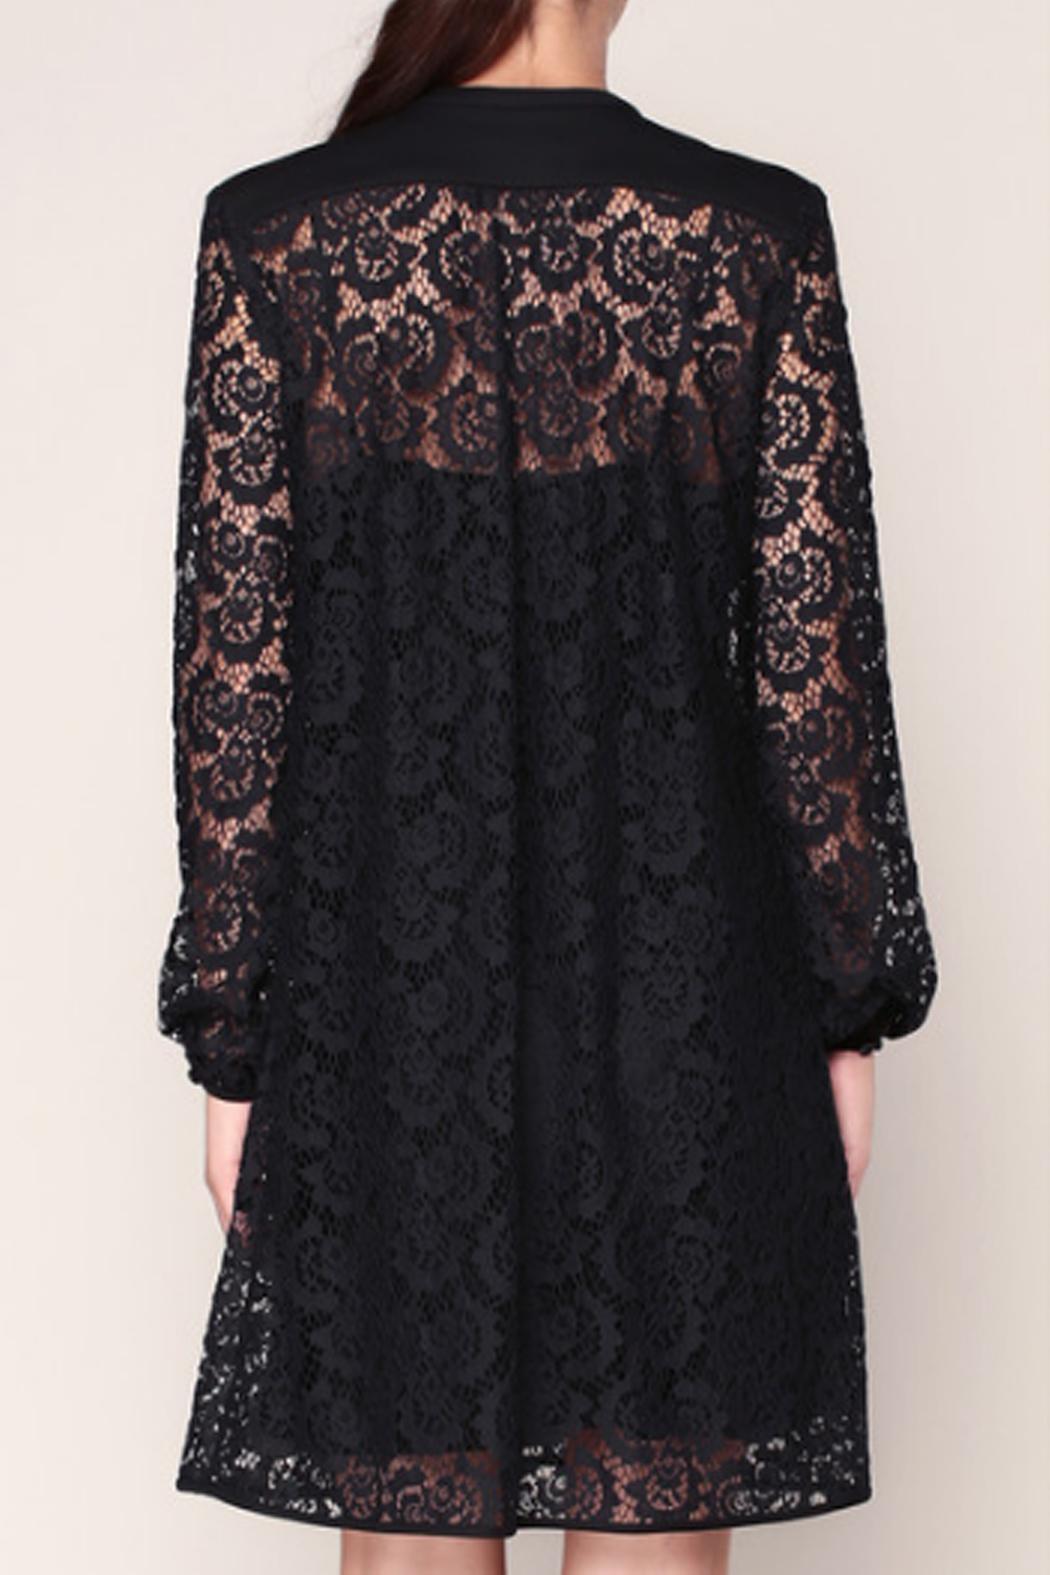 Sonia by Sonia Rykiel Black Lace Dress - Side Cropped Image